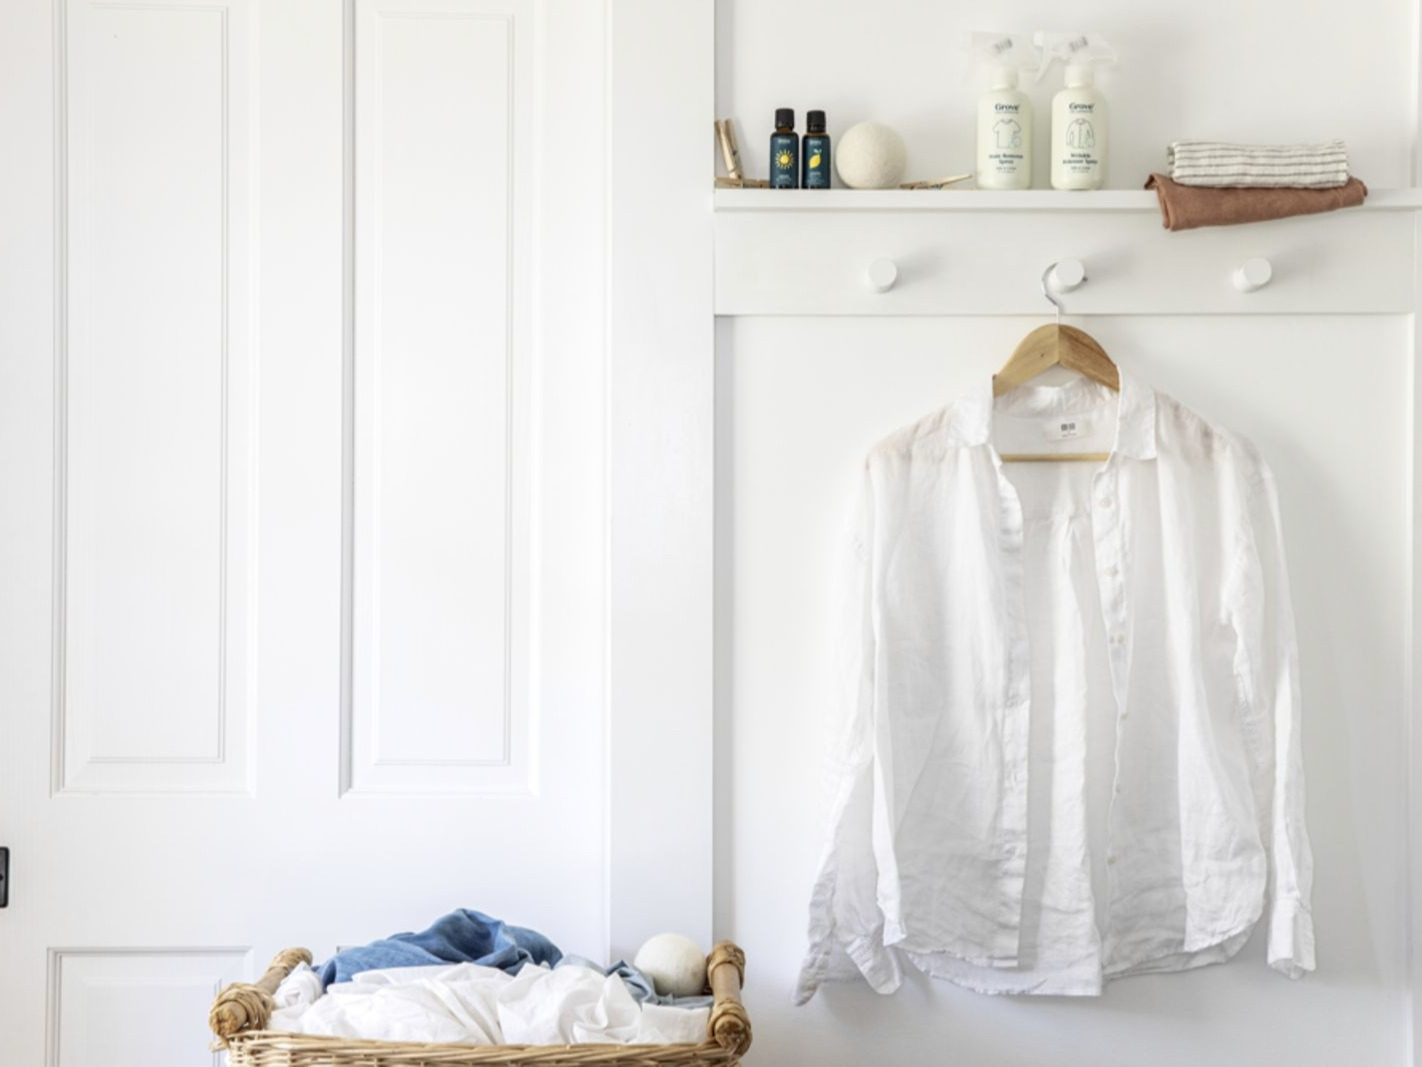 20 Easy Steps for Washing White Clothes & Keeping Them White